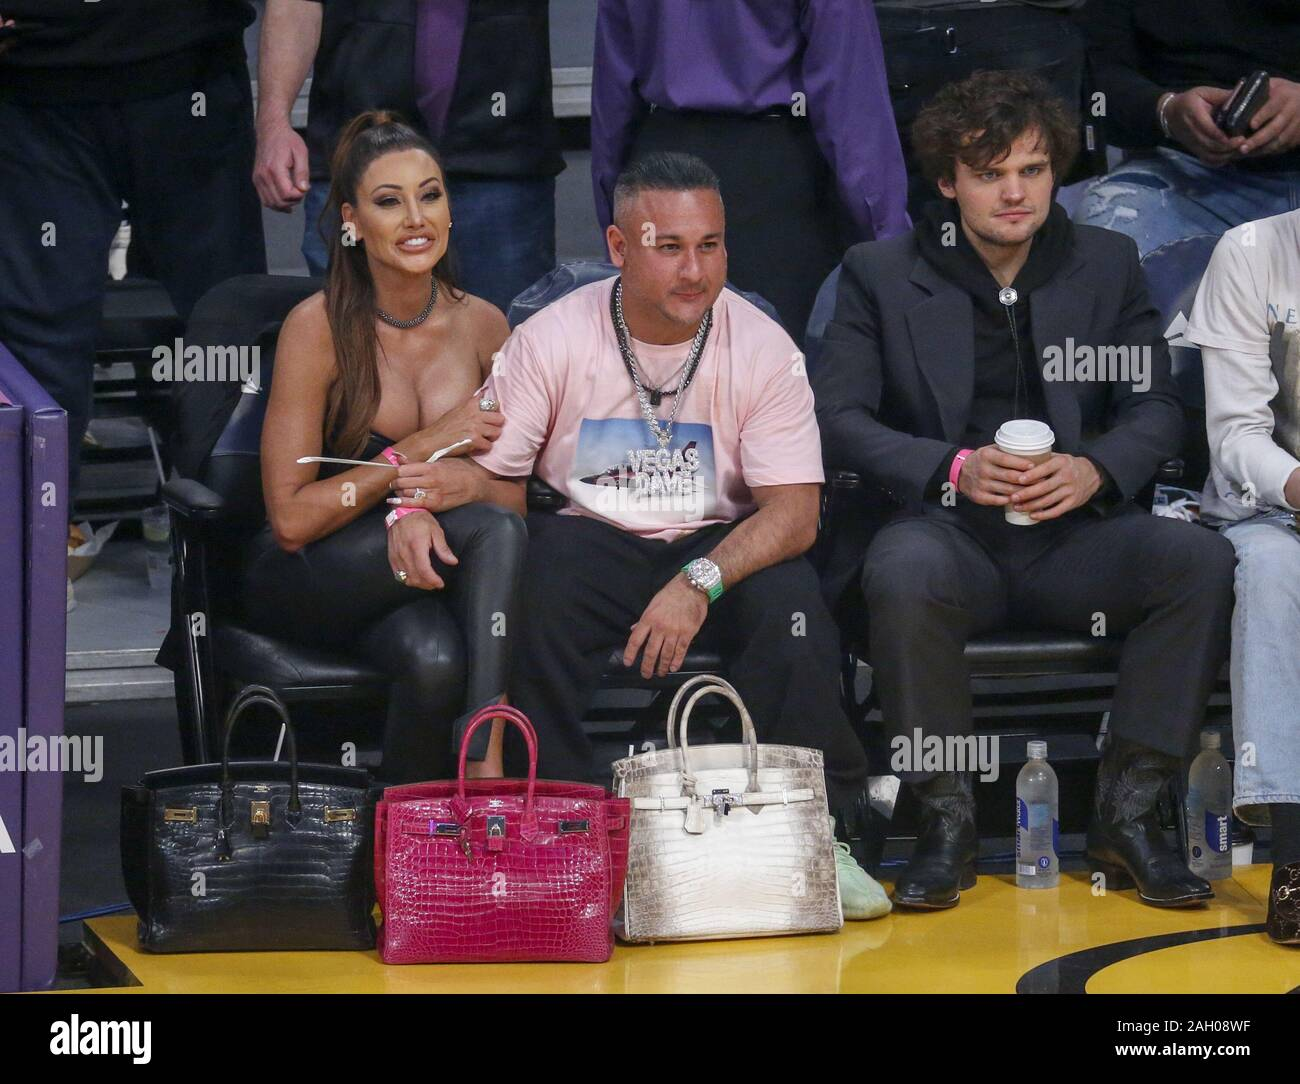 Ray Nicholson High Resolution Stock Photography And Images Alamy Naast de grote hoeveelheid disney covers vindt u. https www alamy com december 22 2019 los angeles california us l r holly sonders vegas dave and ray nicholson attend a basketball game between the los angeles lakers and the denver nuggets at staples center on december 22 2019 in los angeles credit image ringo chiuzuma wire image337453131 html